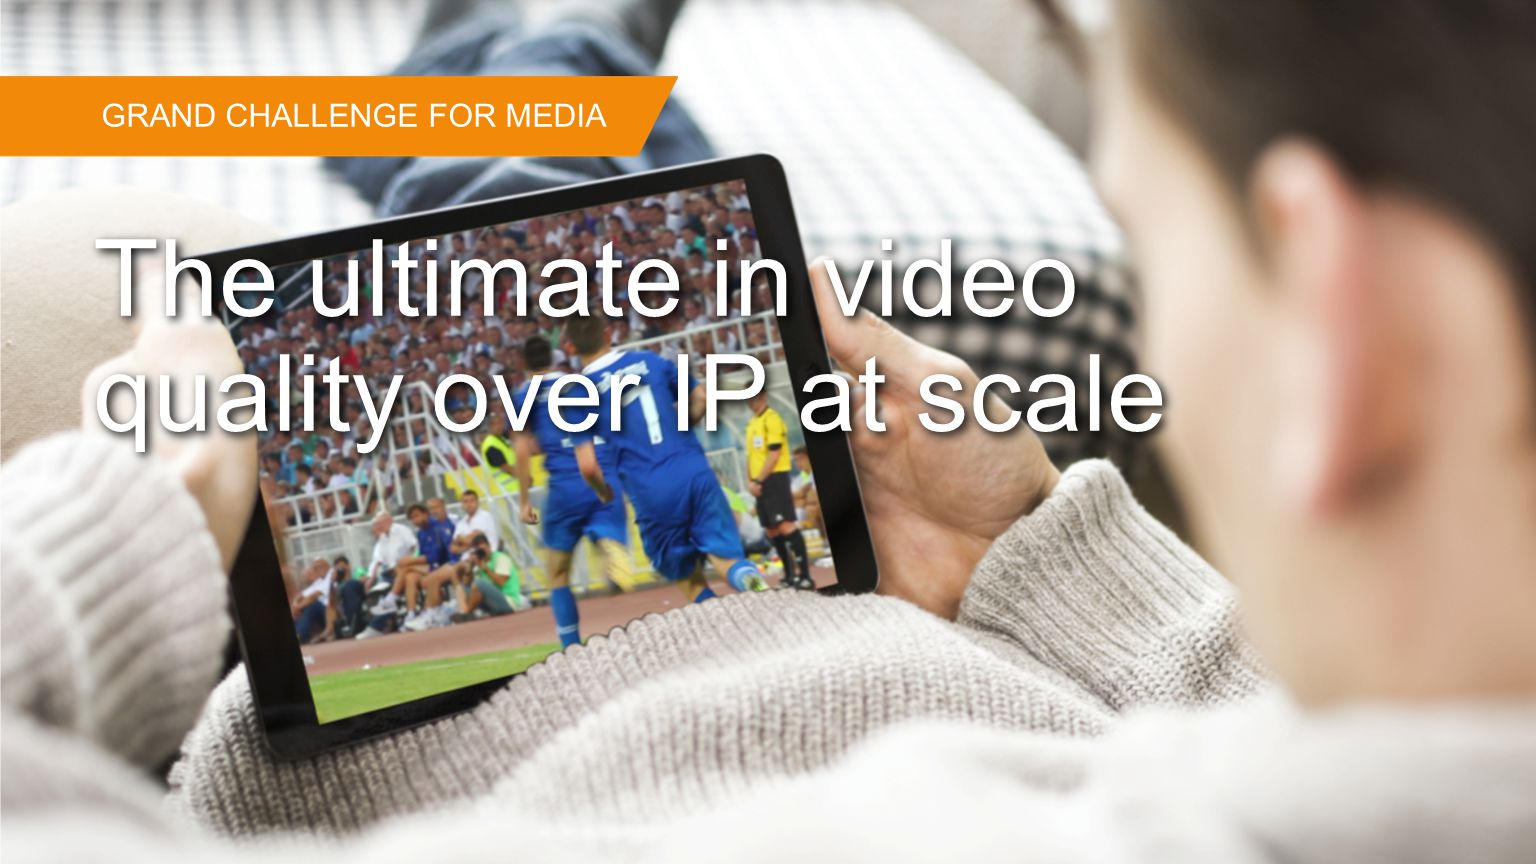 The ultimate in video quality over IP at scale